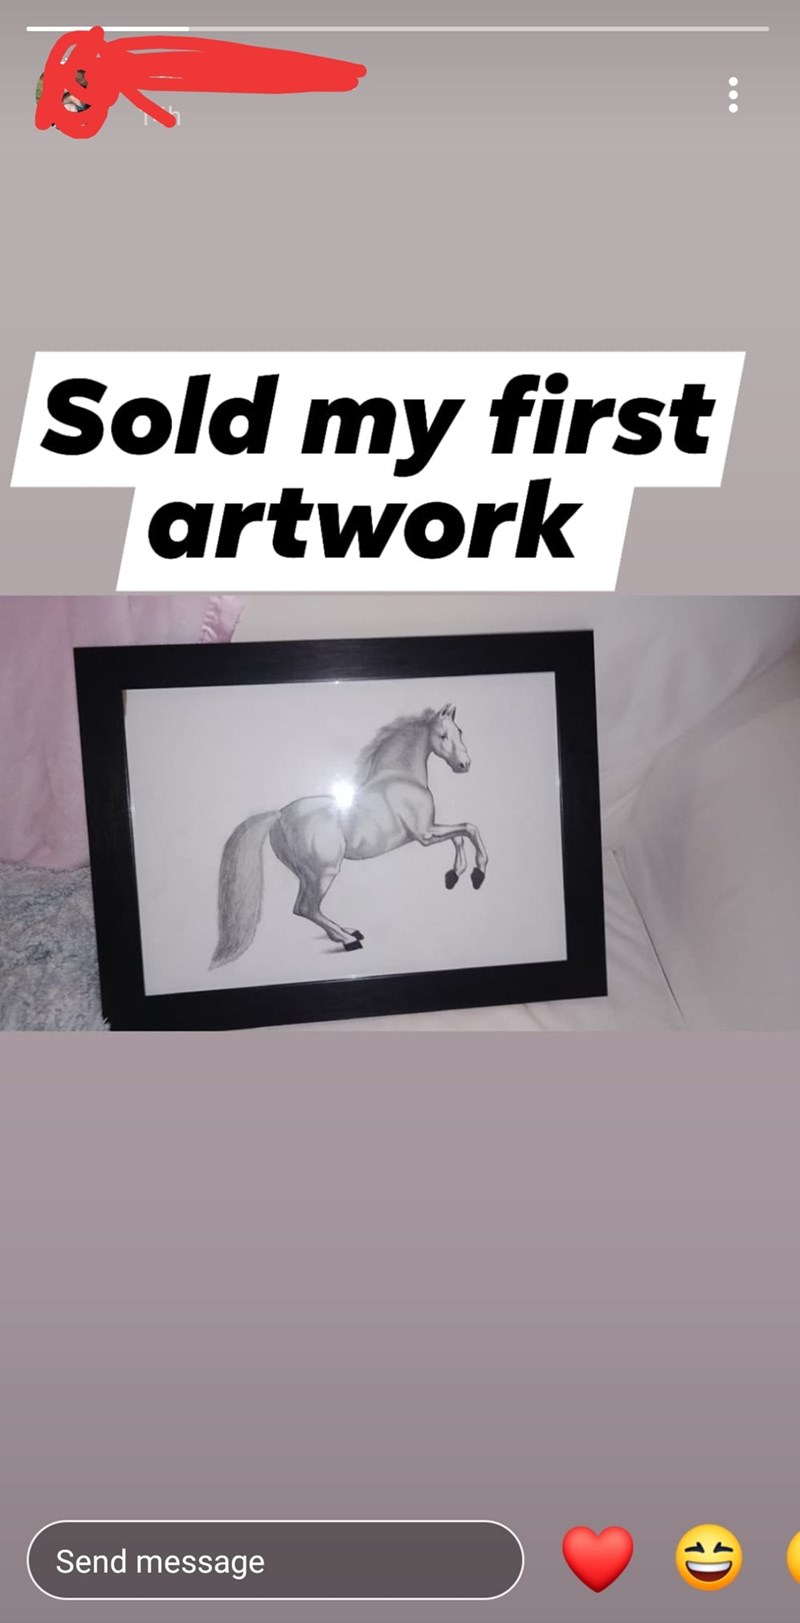 White - Sold my first artwork Send message